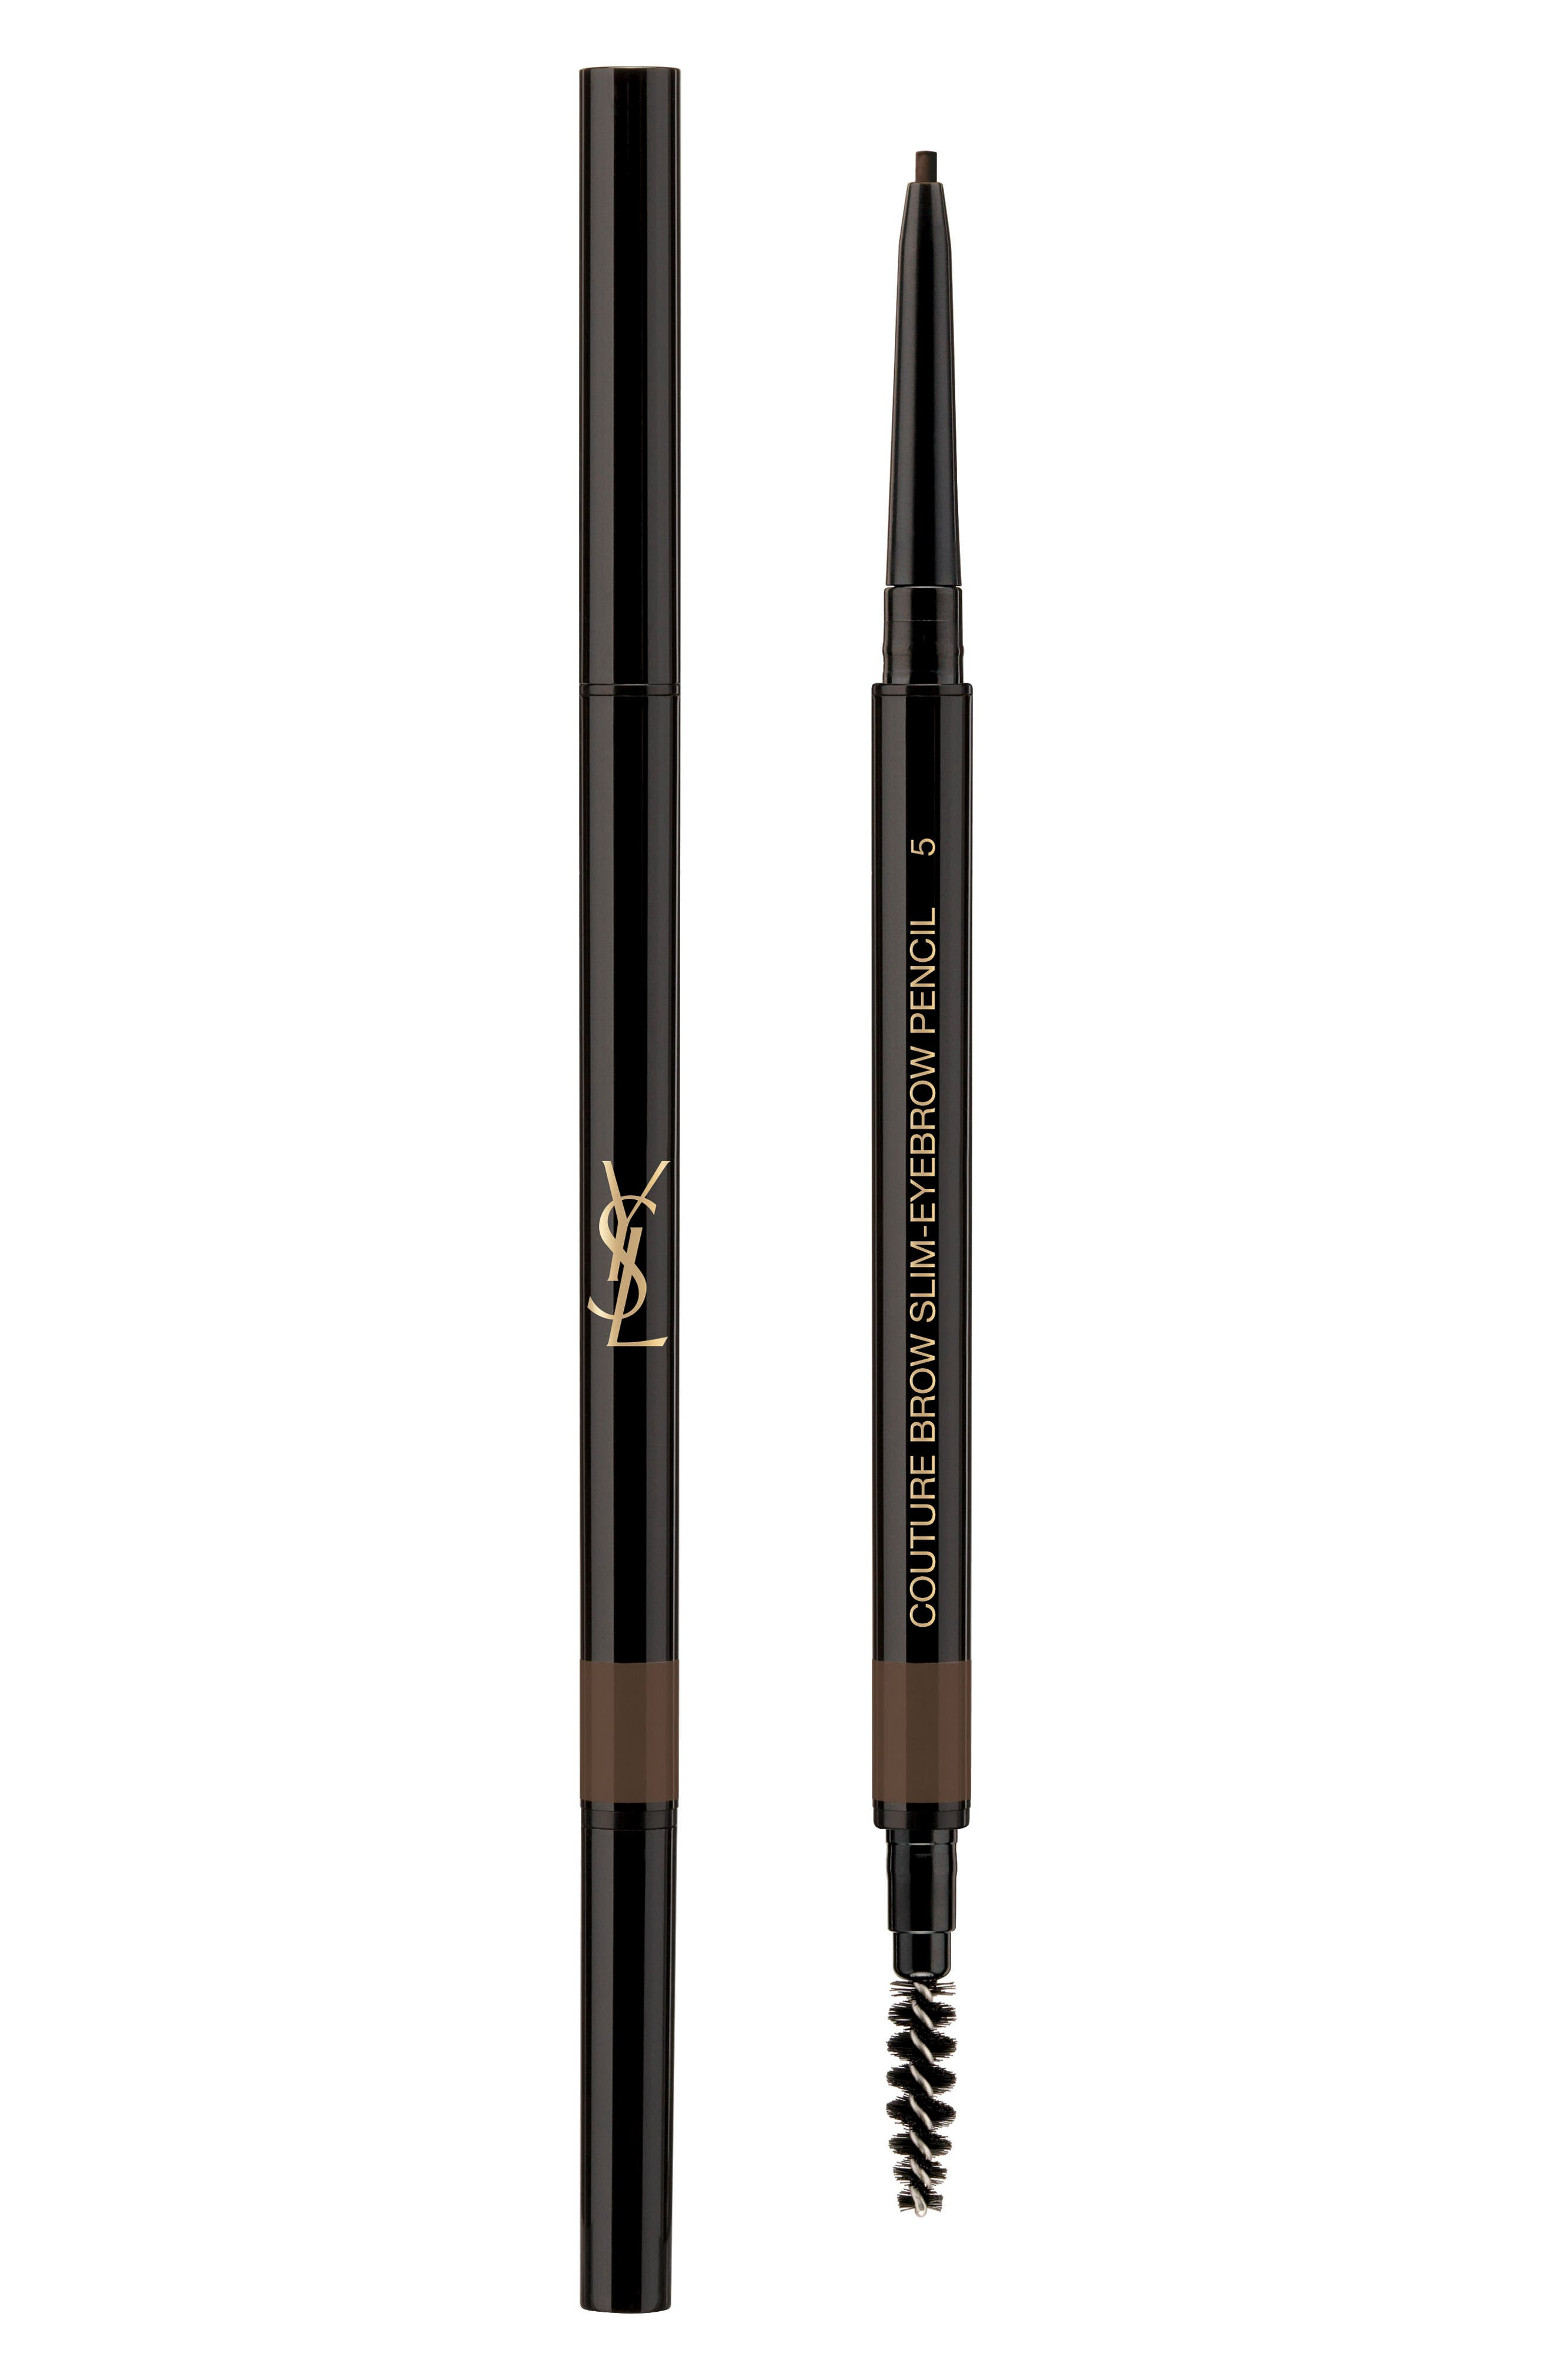 Yves Saint Laurent Couture Brow Slim Eyebrow Pencil - 05 Deep Brown